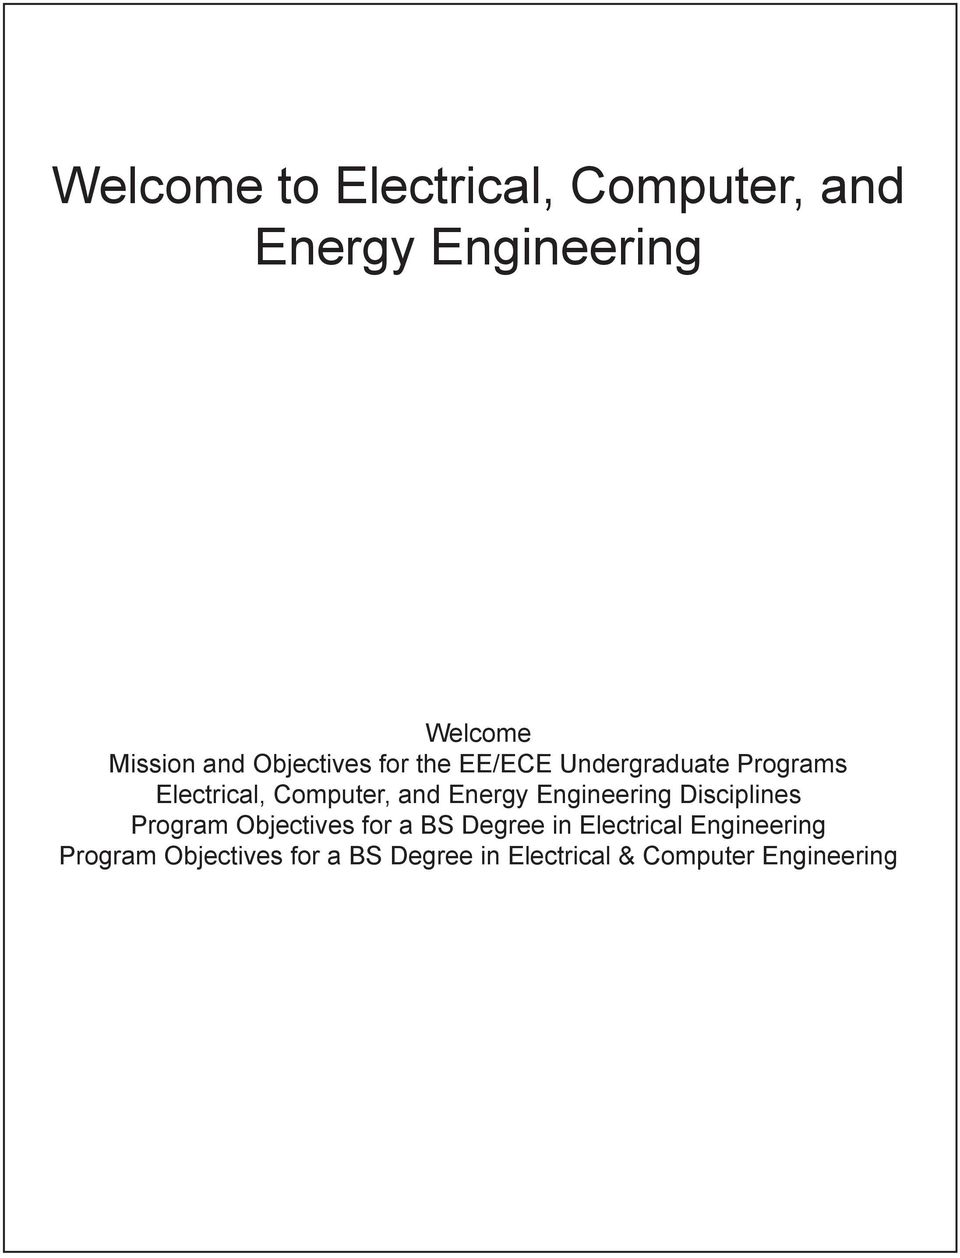 Energy Engineering Disciplines Program Objectives for a BS Degree in